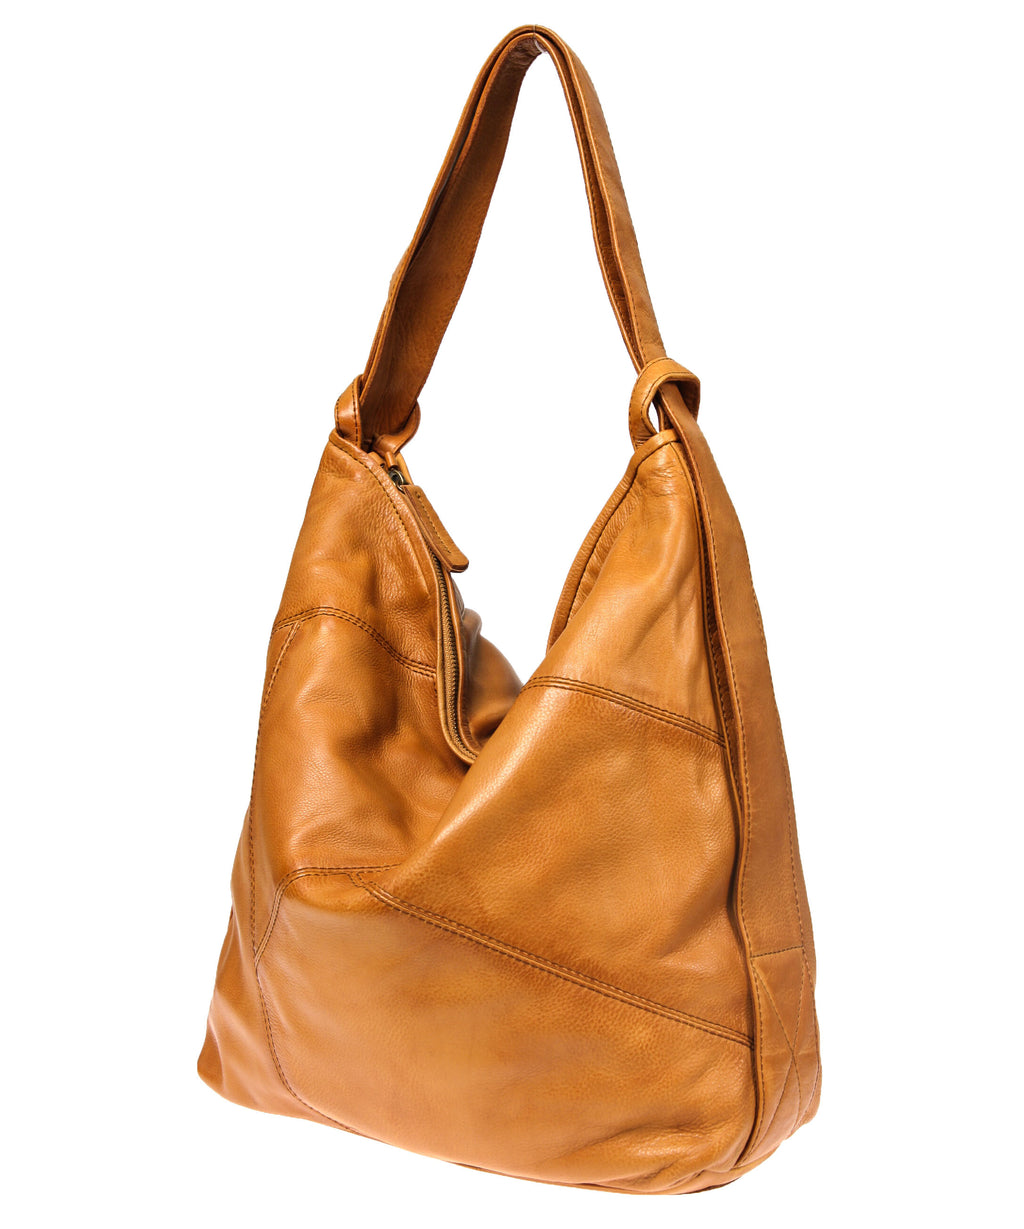 Tano Convertible Hobo/Backpack (4401610489940)